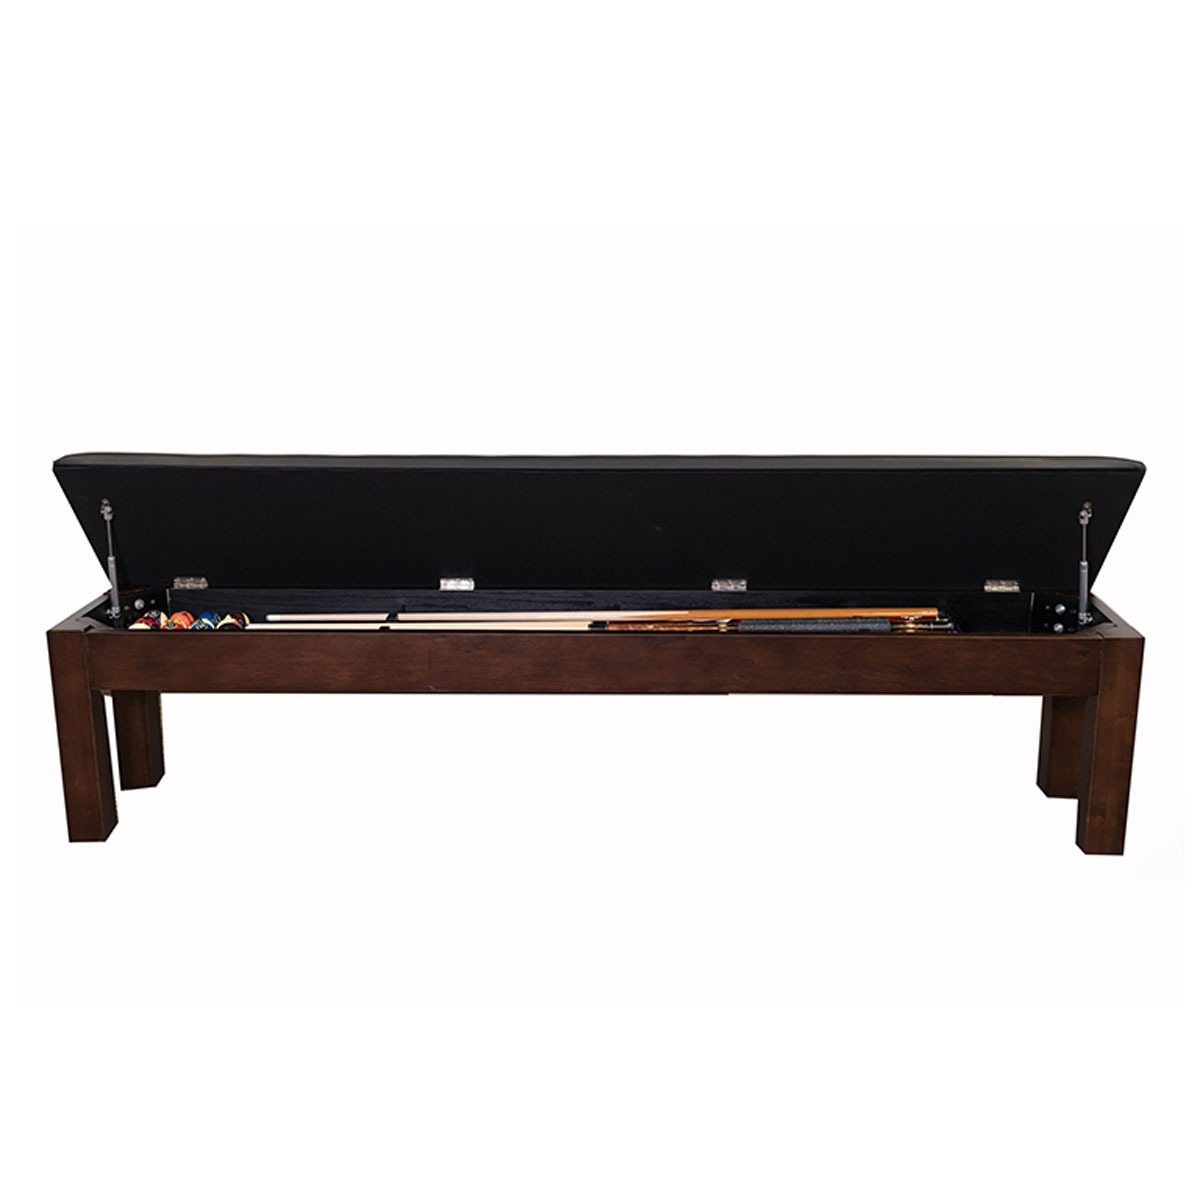 Hamilton Bench Openq - Barnstable Pool Table